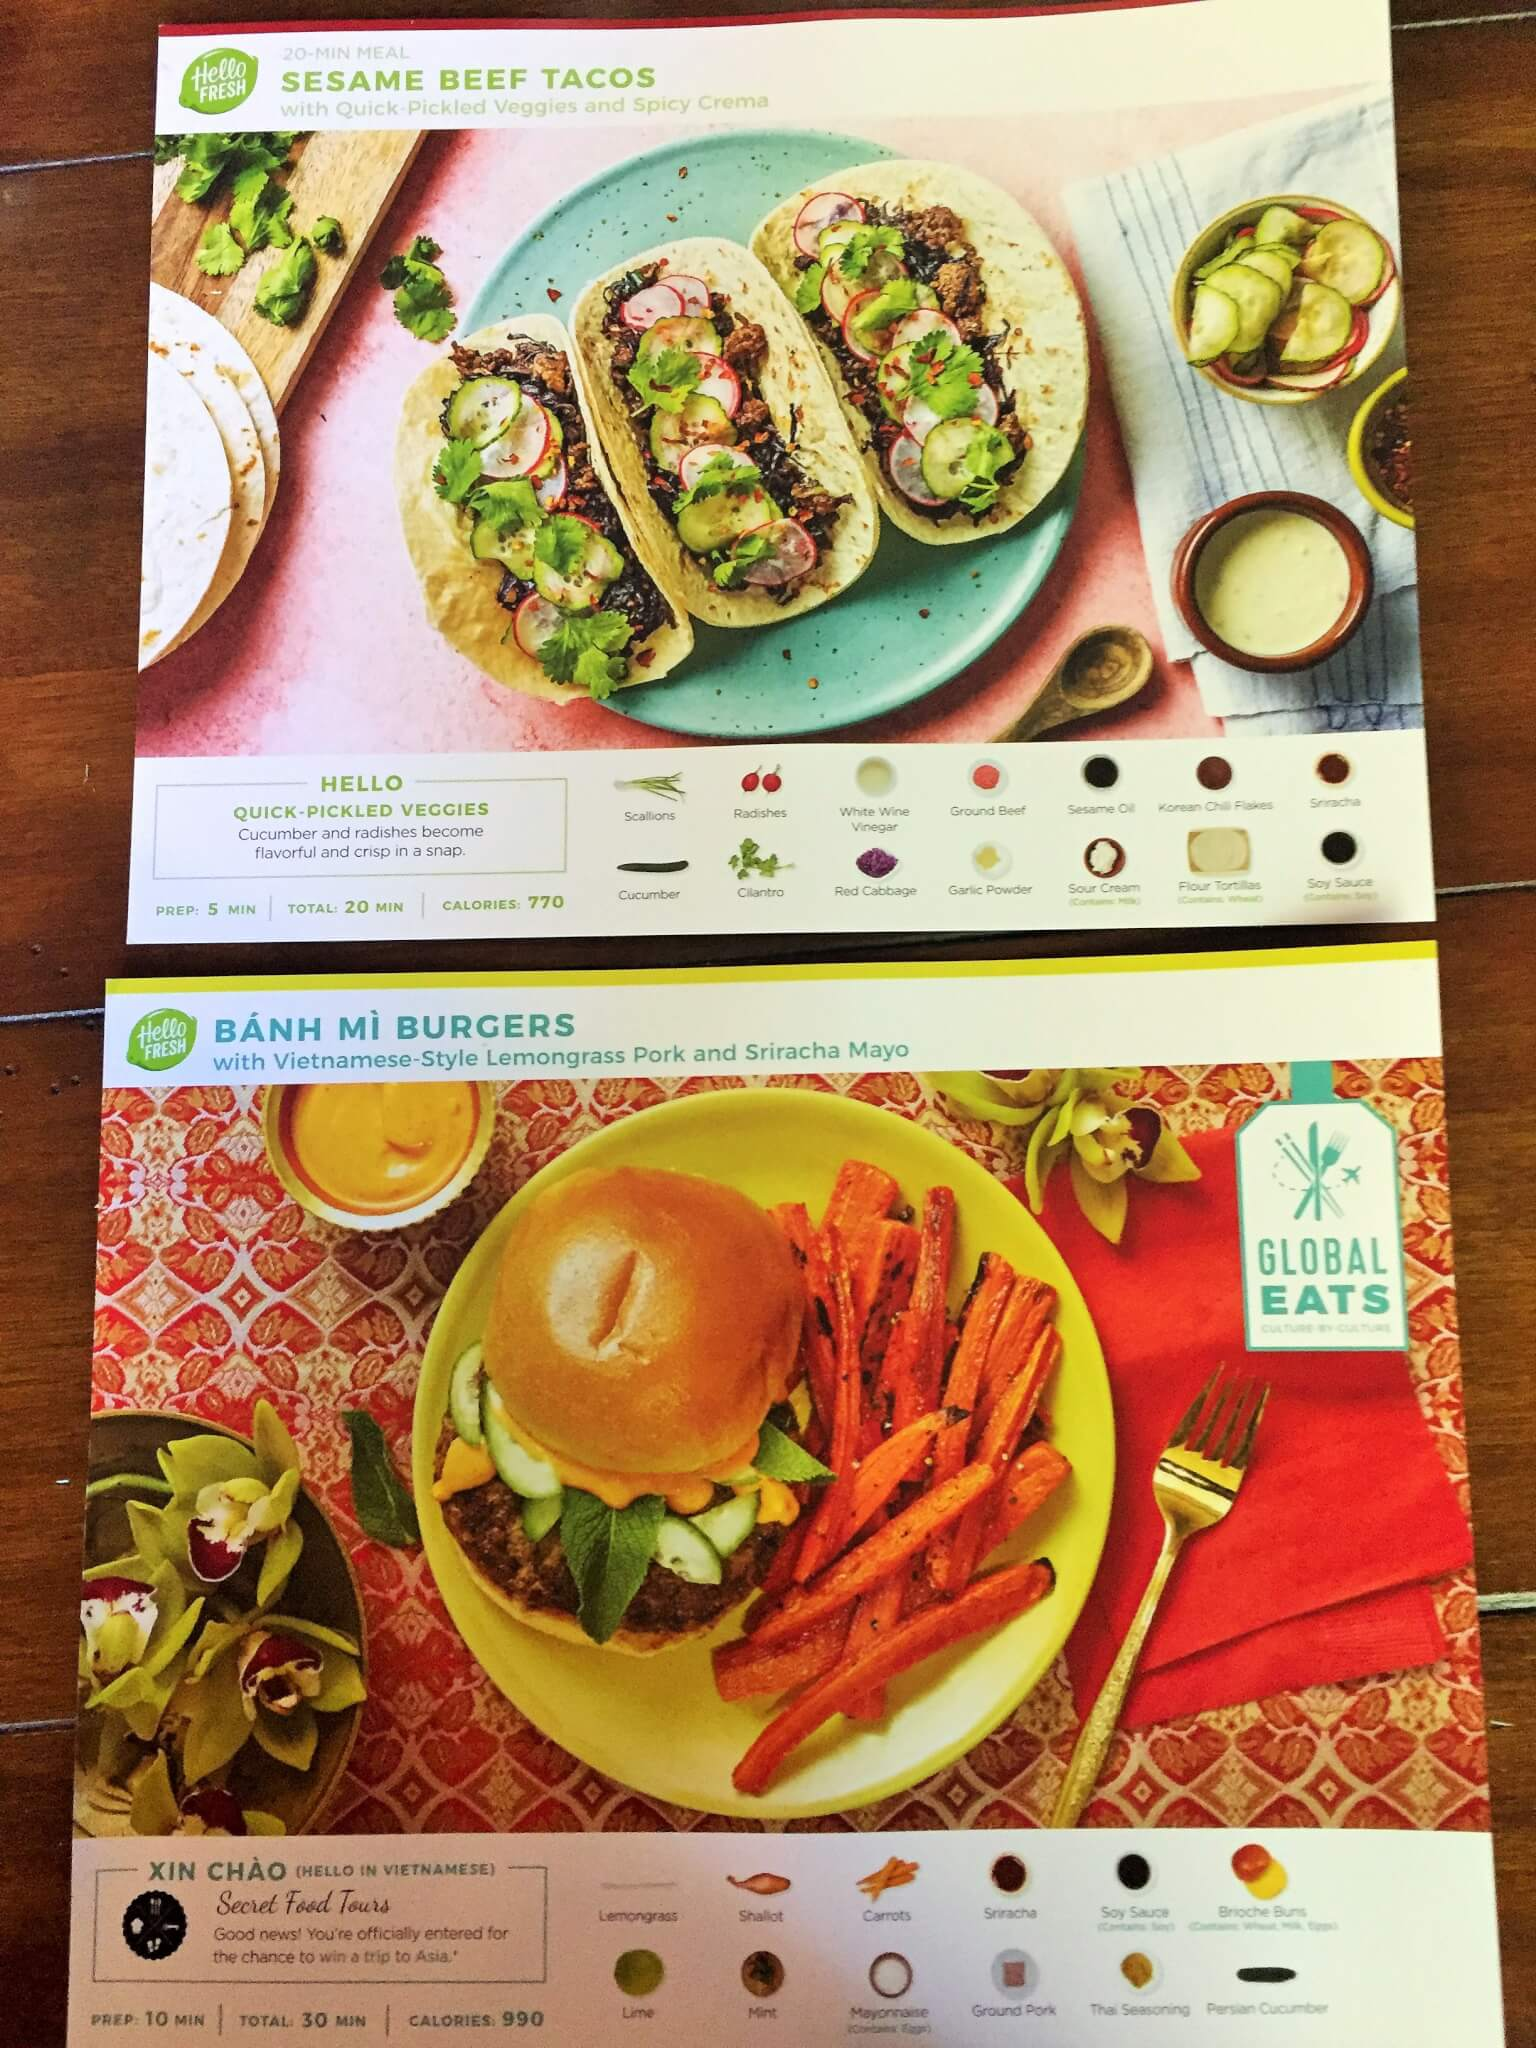 Hello Fresh Recipe Cards for Sesame Beef Tacos and Banh Mi Burgers